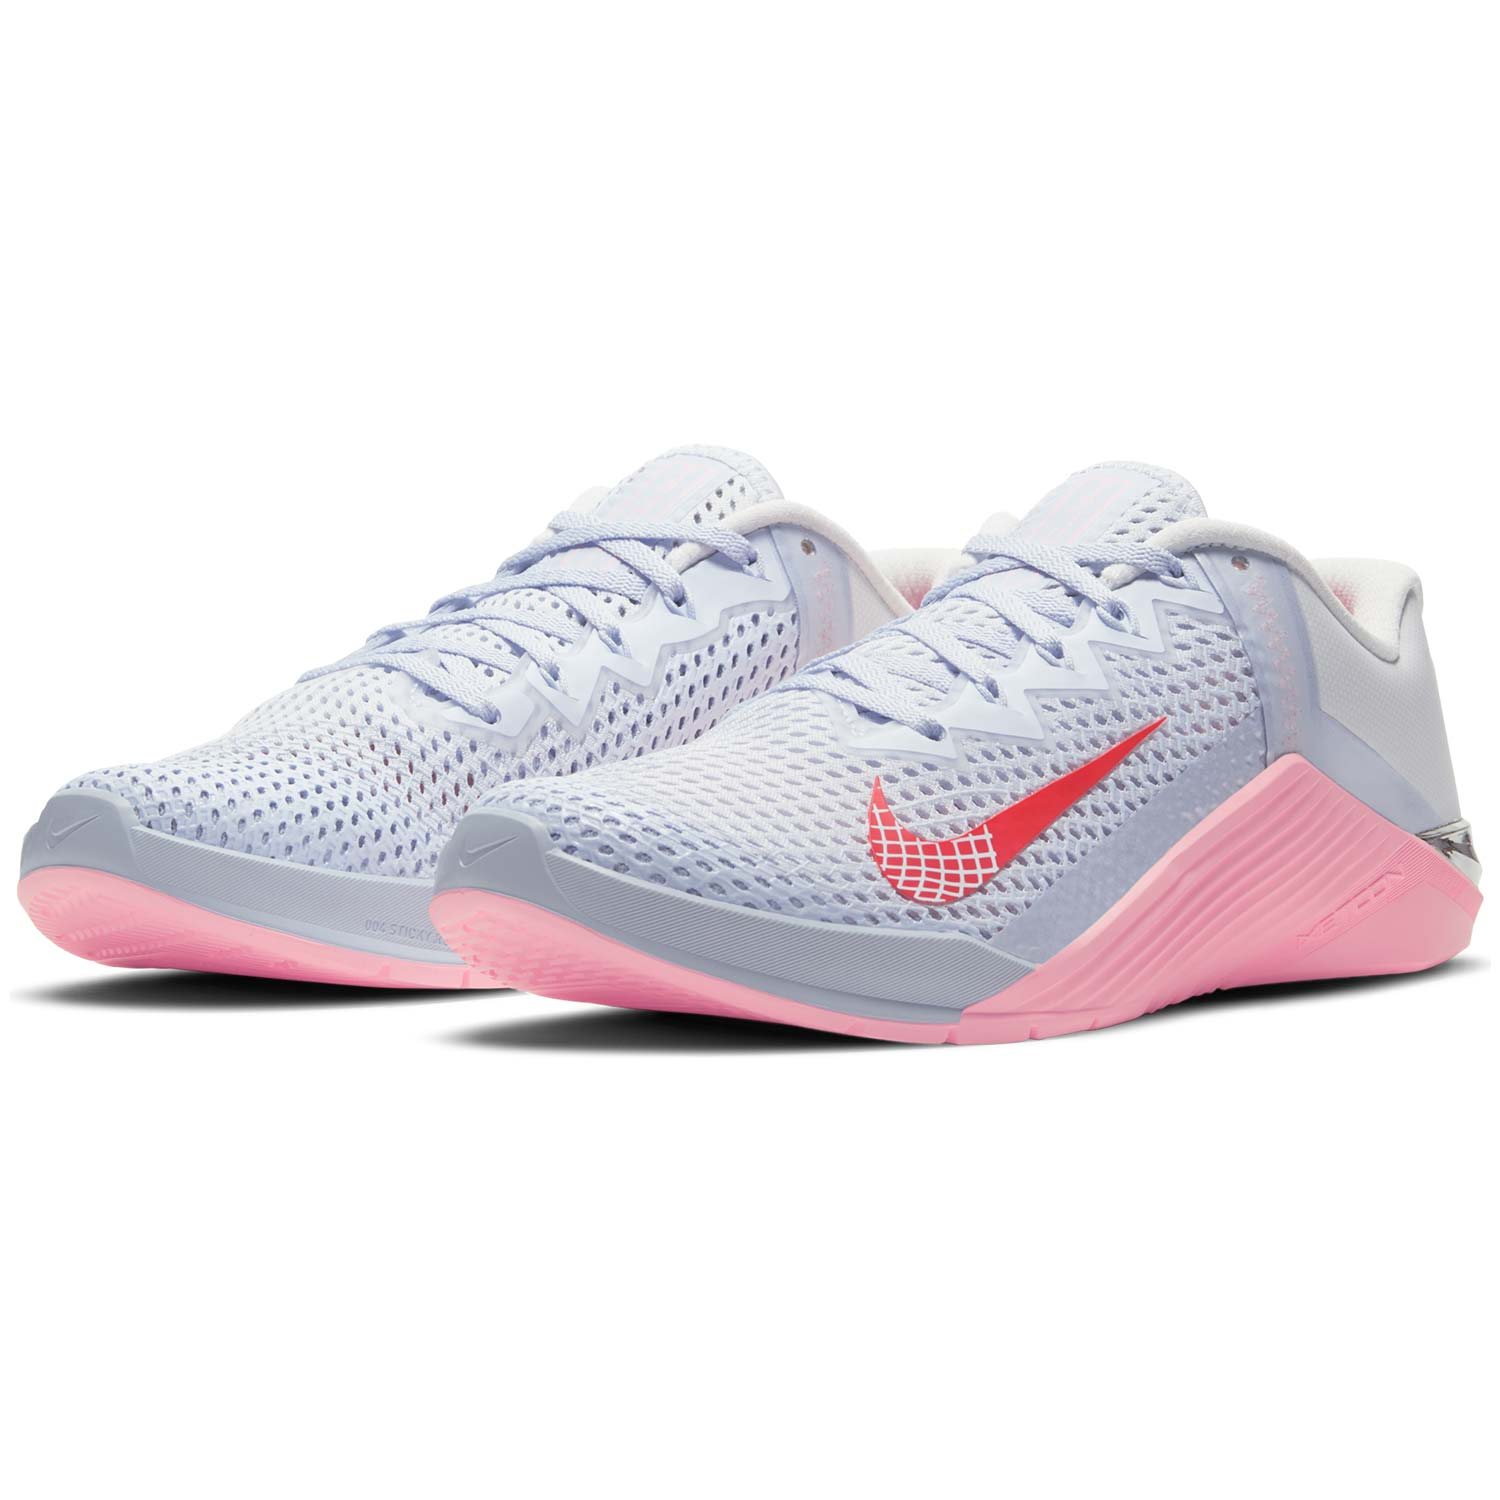 NIKE METCON 6Women's Training Shoes